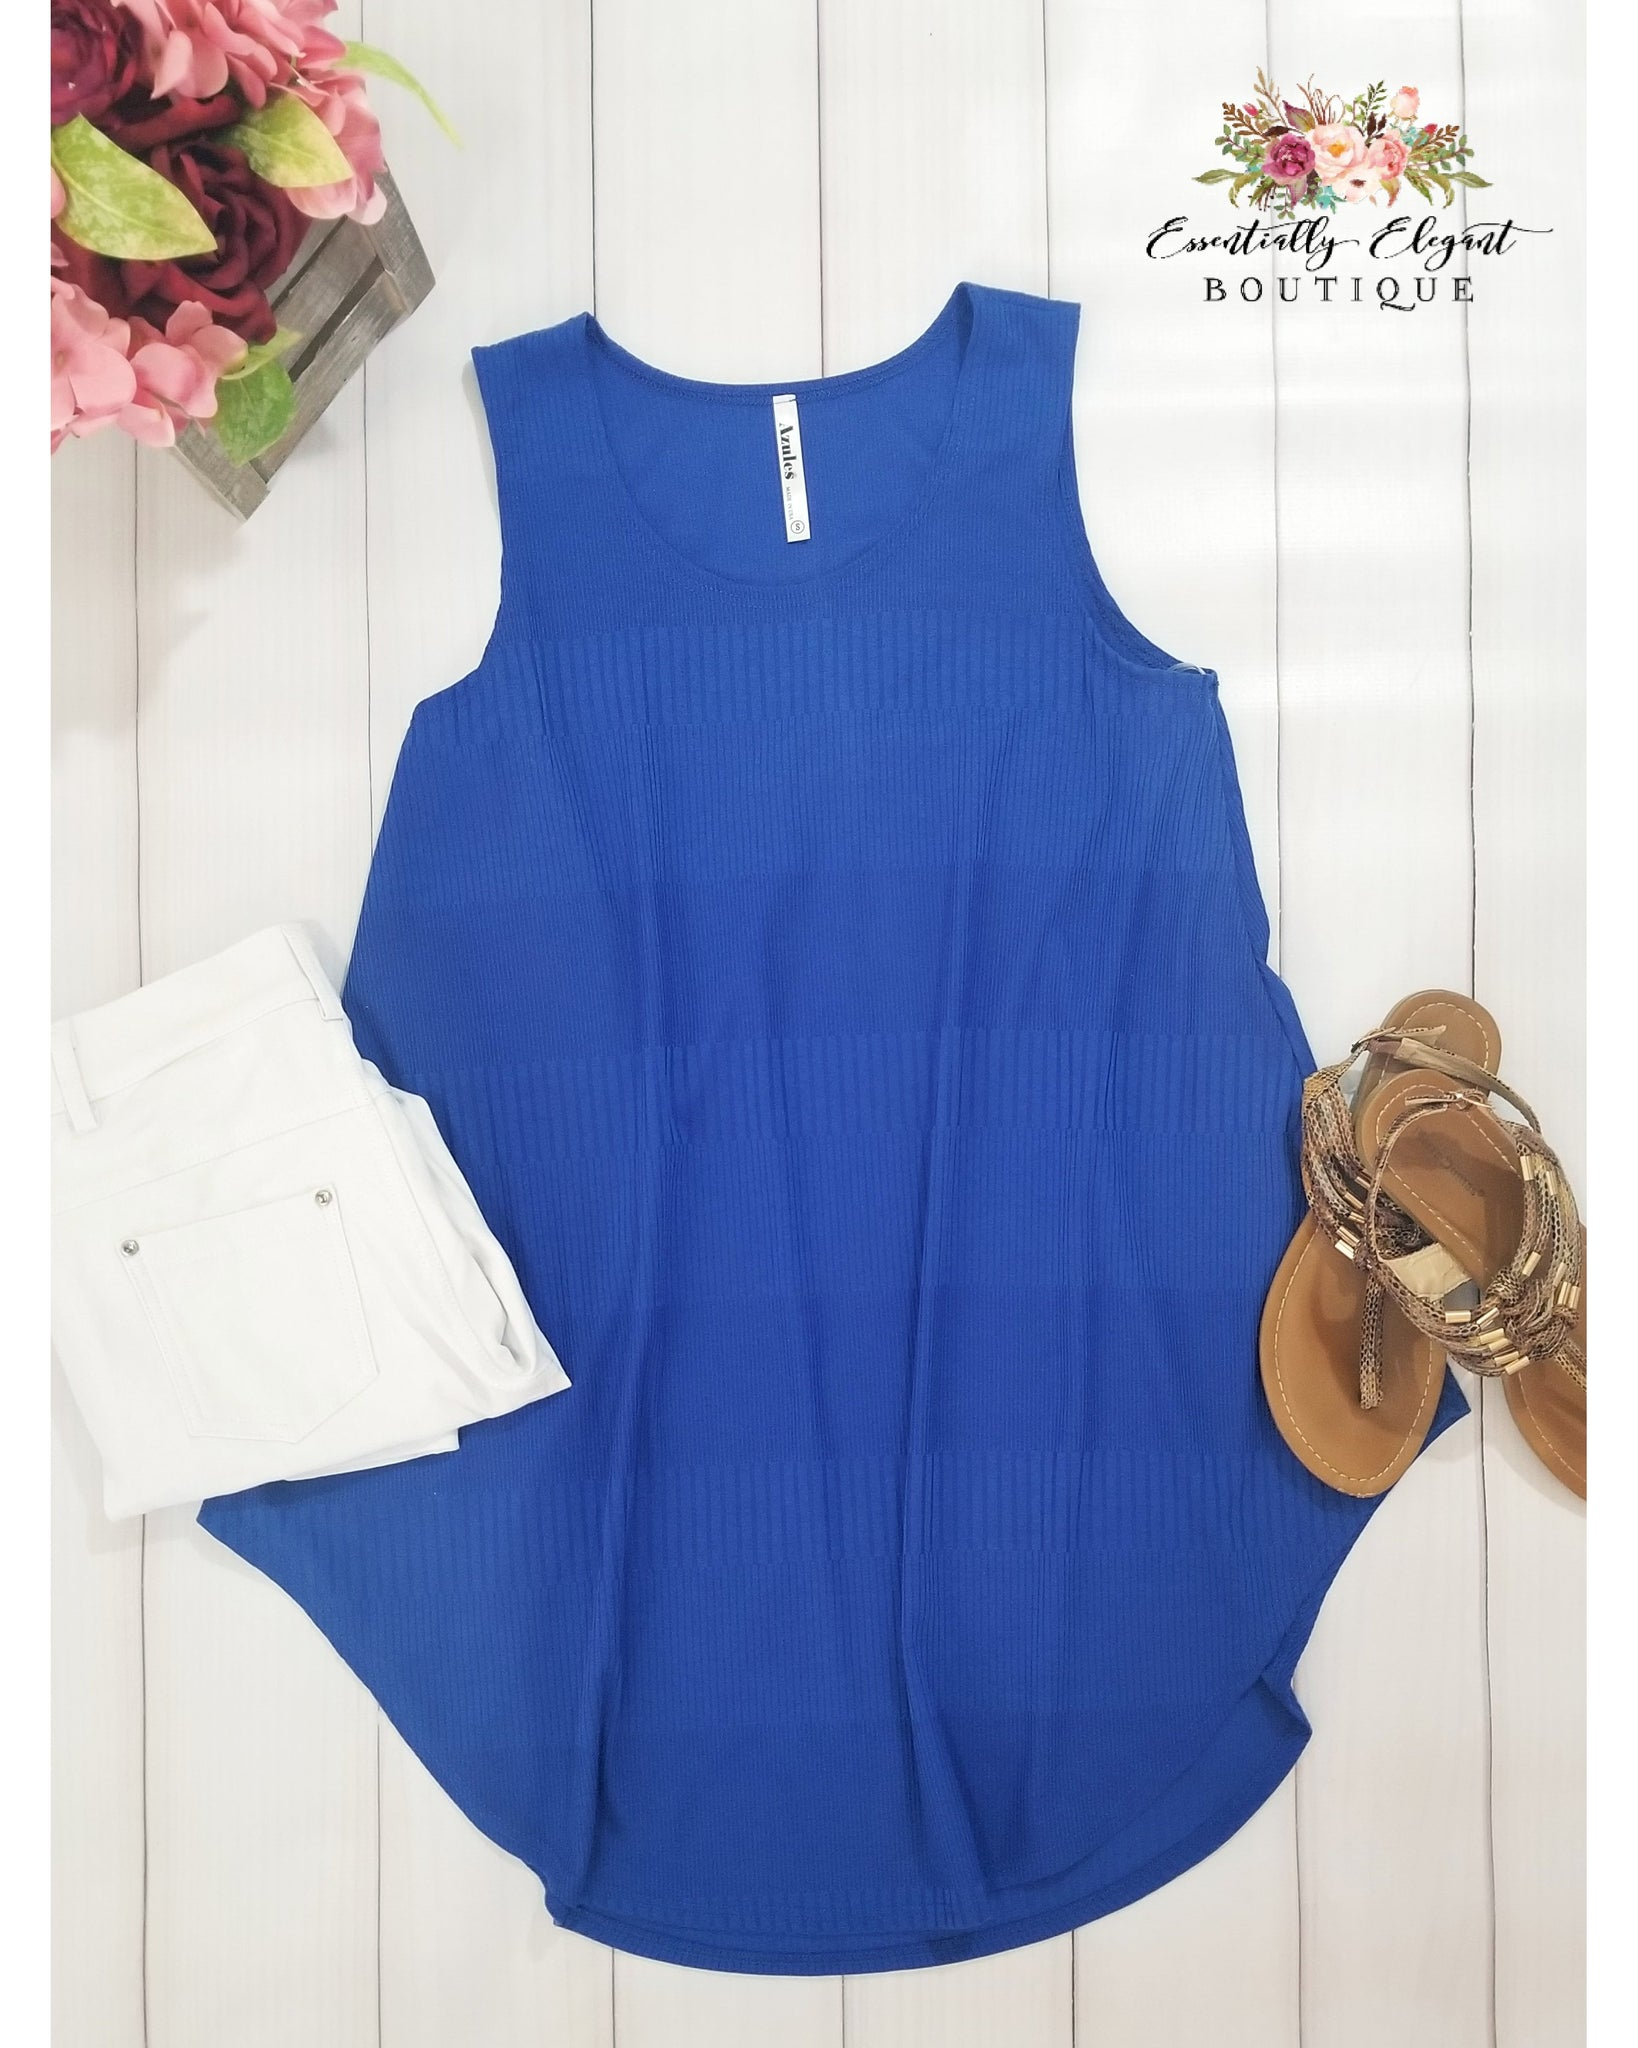 City Chic Sleeveless Knit Top in Royal Blue - Essentially Elegant